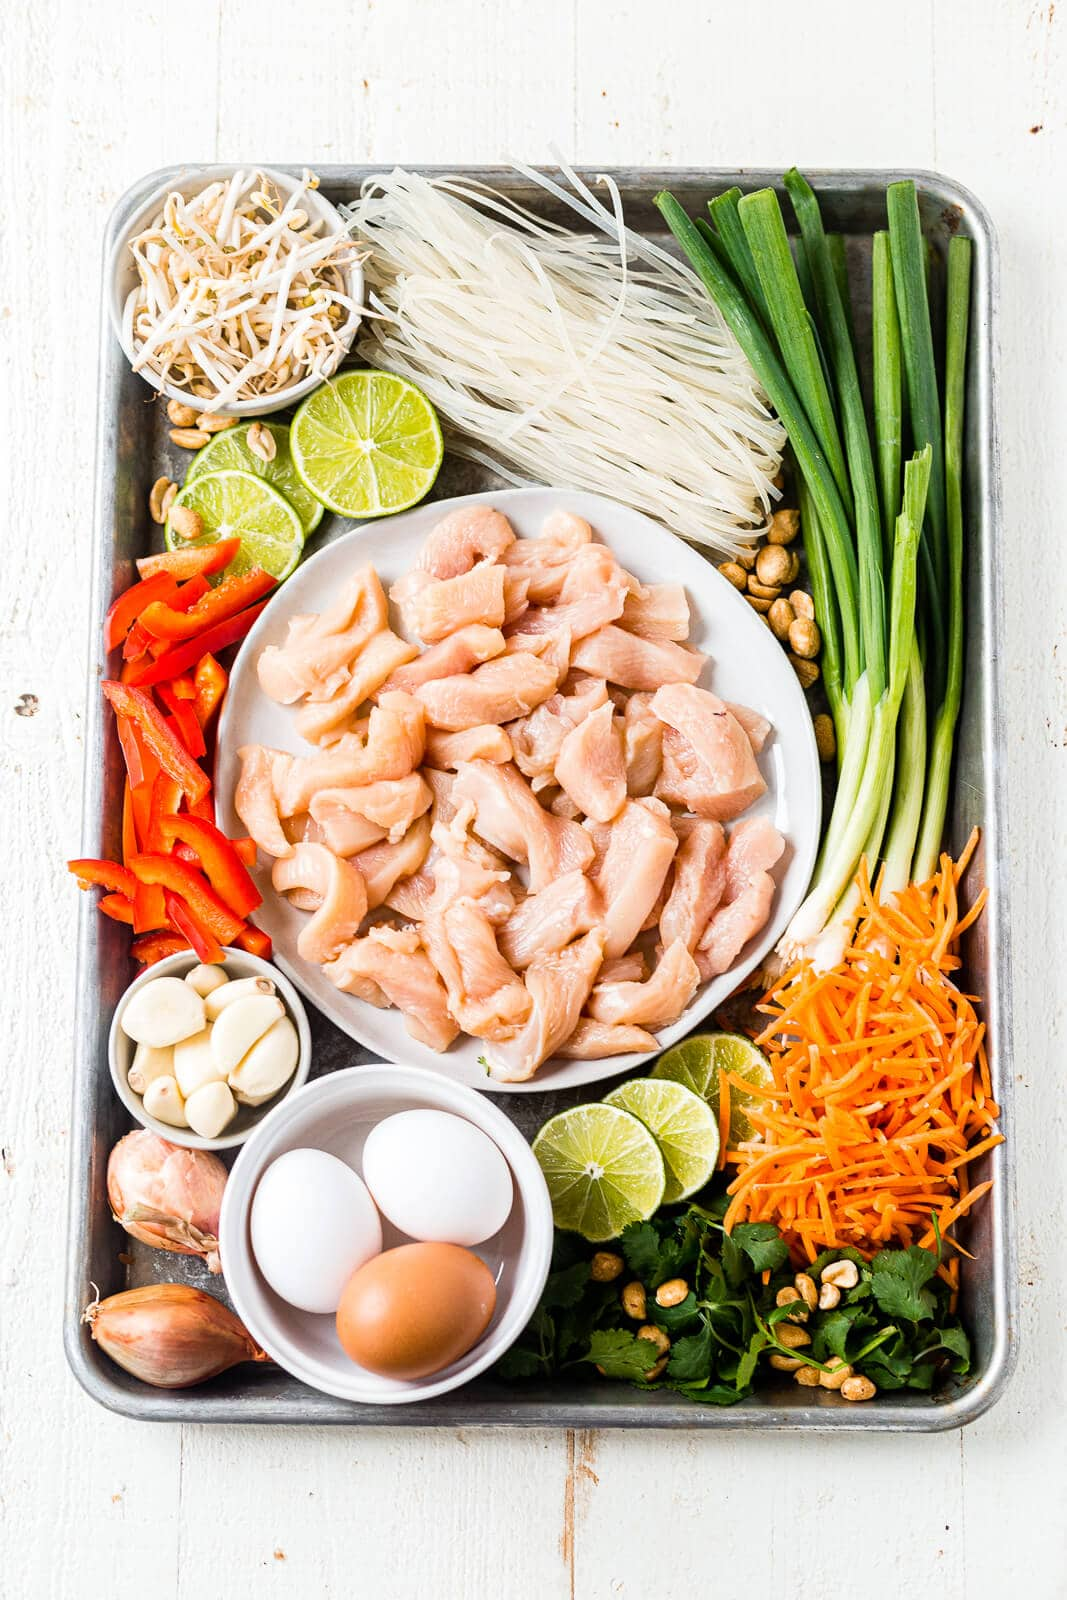 all of the ingredients for healthy chicken pad thai arranged on a sheet pan